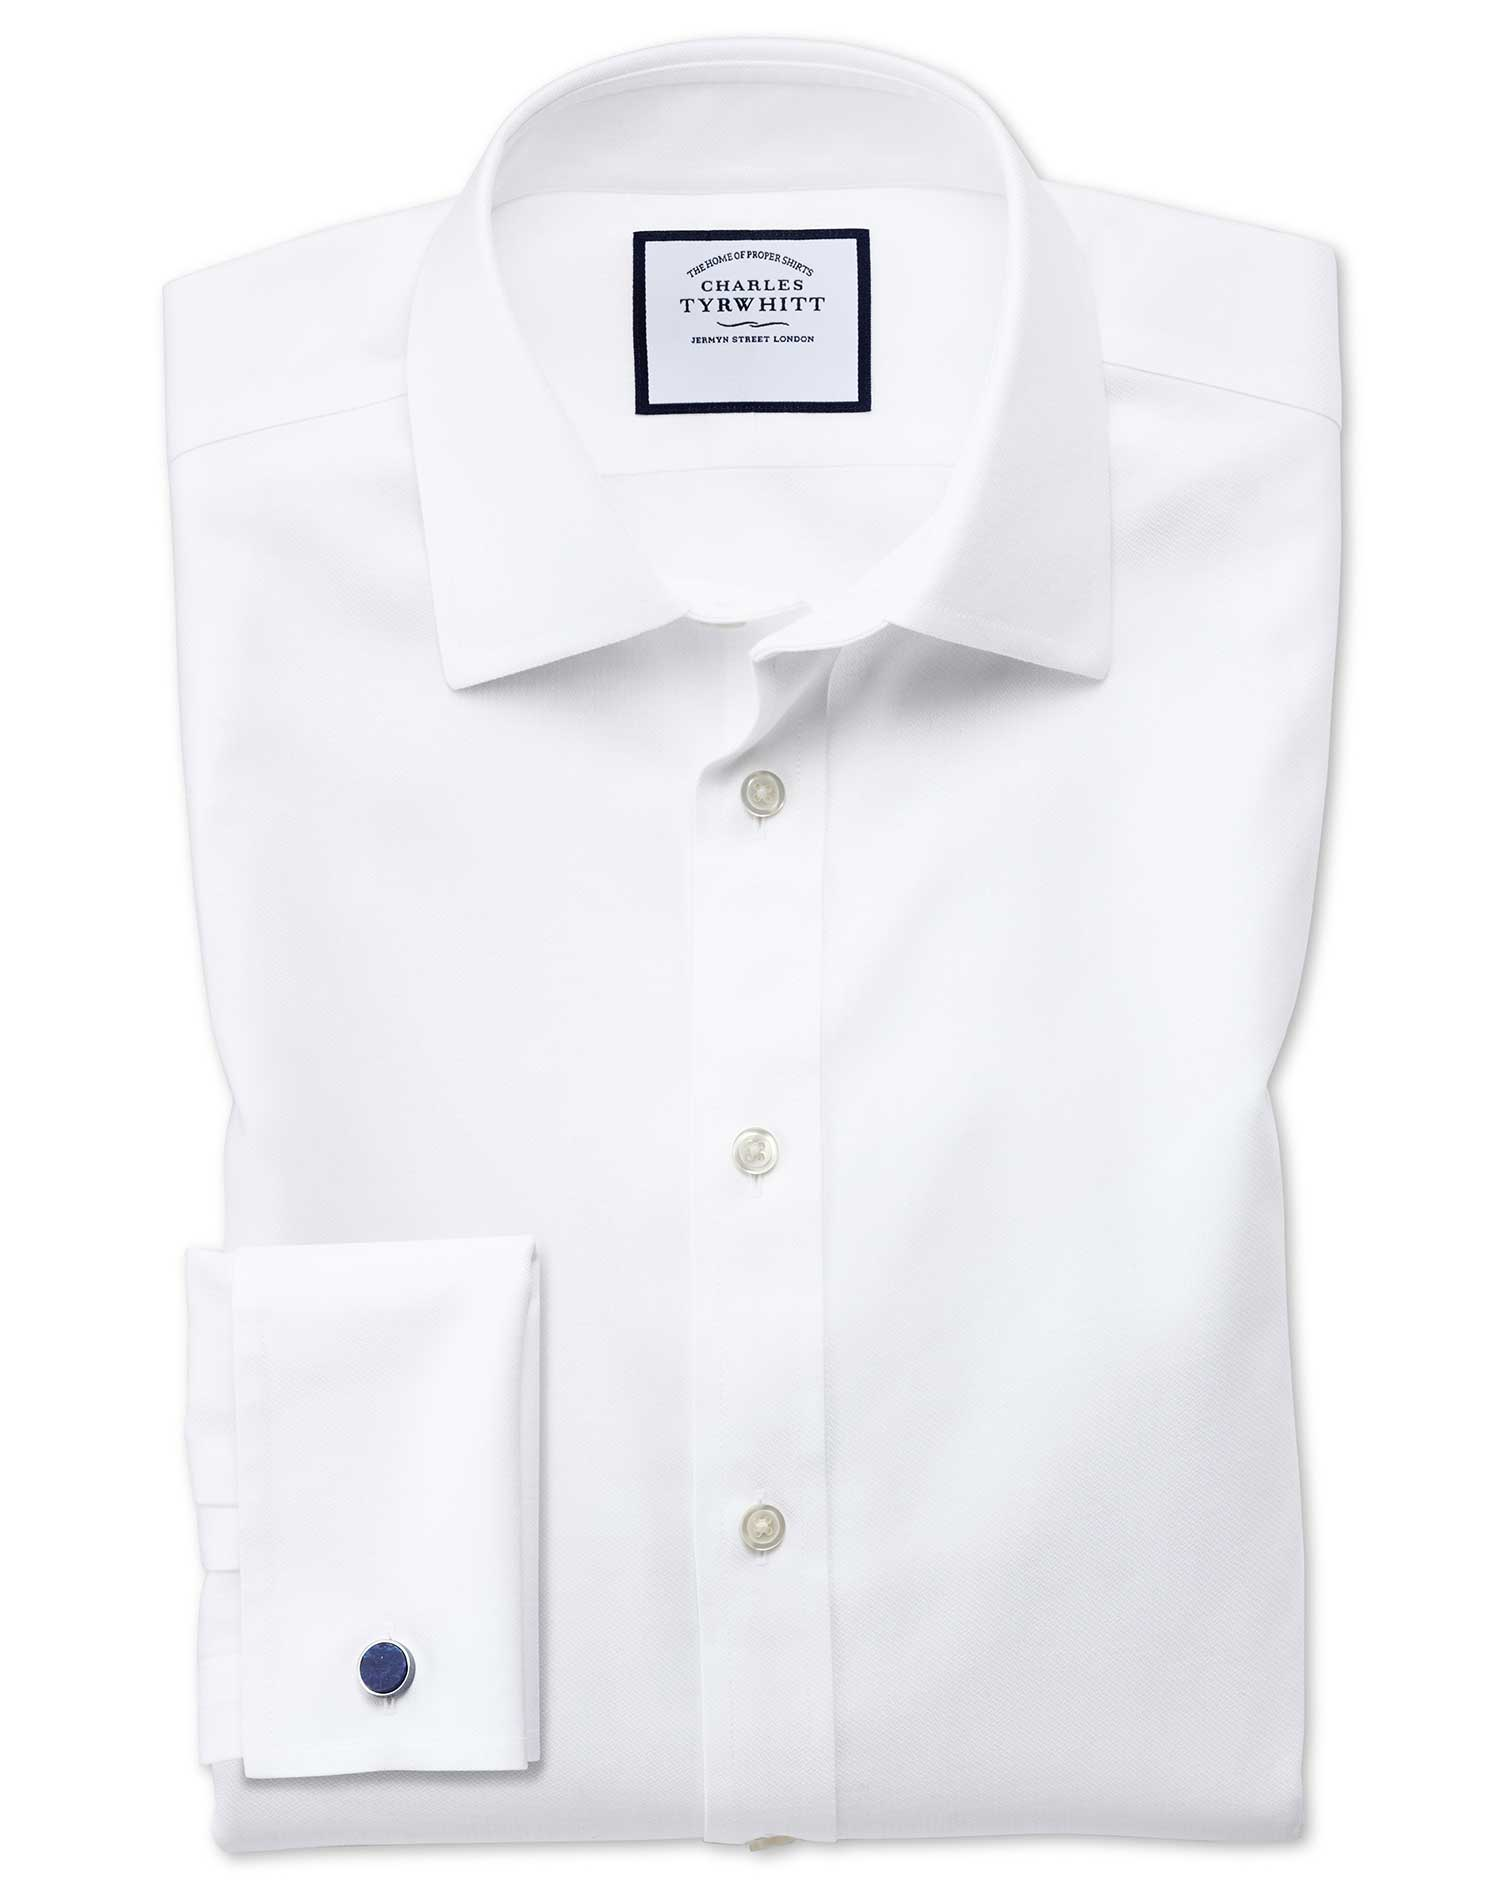 Slim Fit Non-Iron Step Weave White Cotton Formal Shirt Double Cuff Size 18/35 by Charles Tyrwhitt